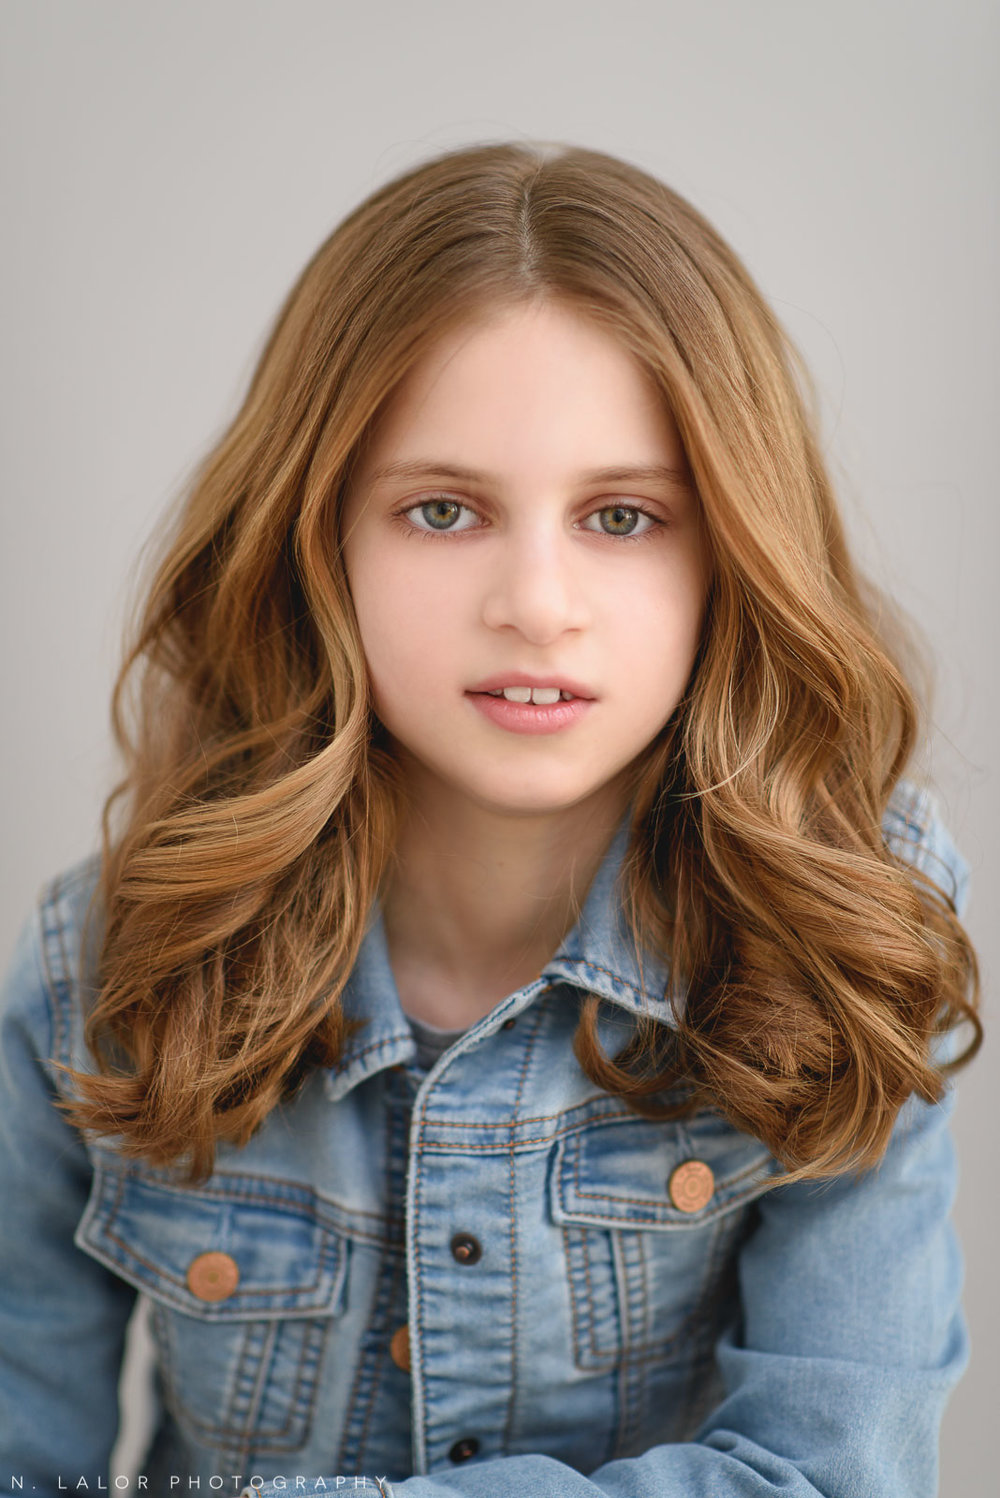 Simple, beautiful headshot of a tween girl. Tween Studio photoshoot by N. Lalor Photography, located in Greenwich, CT.